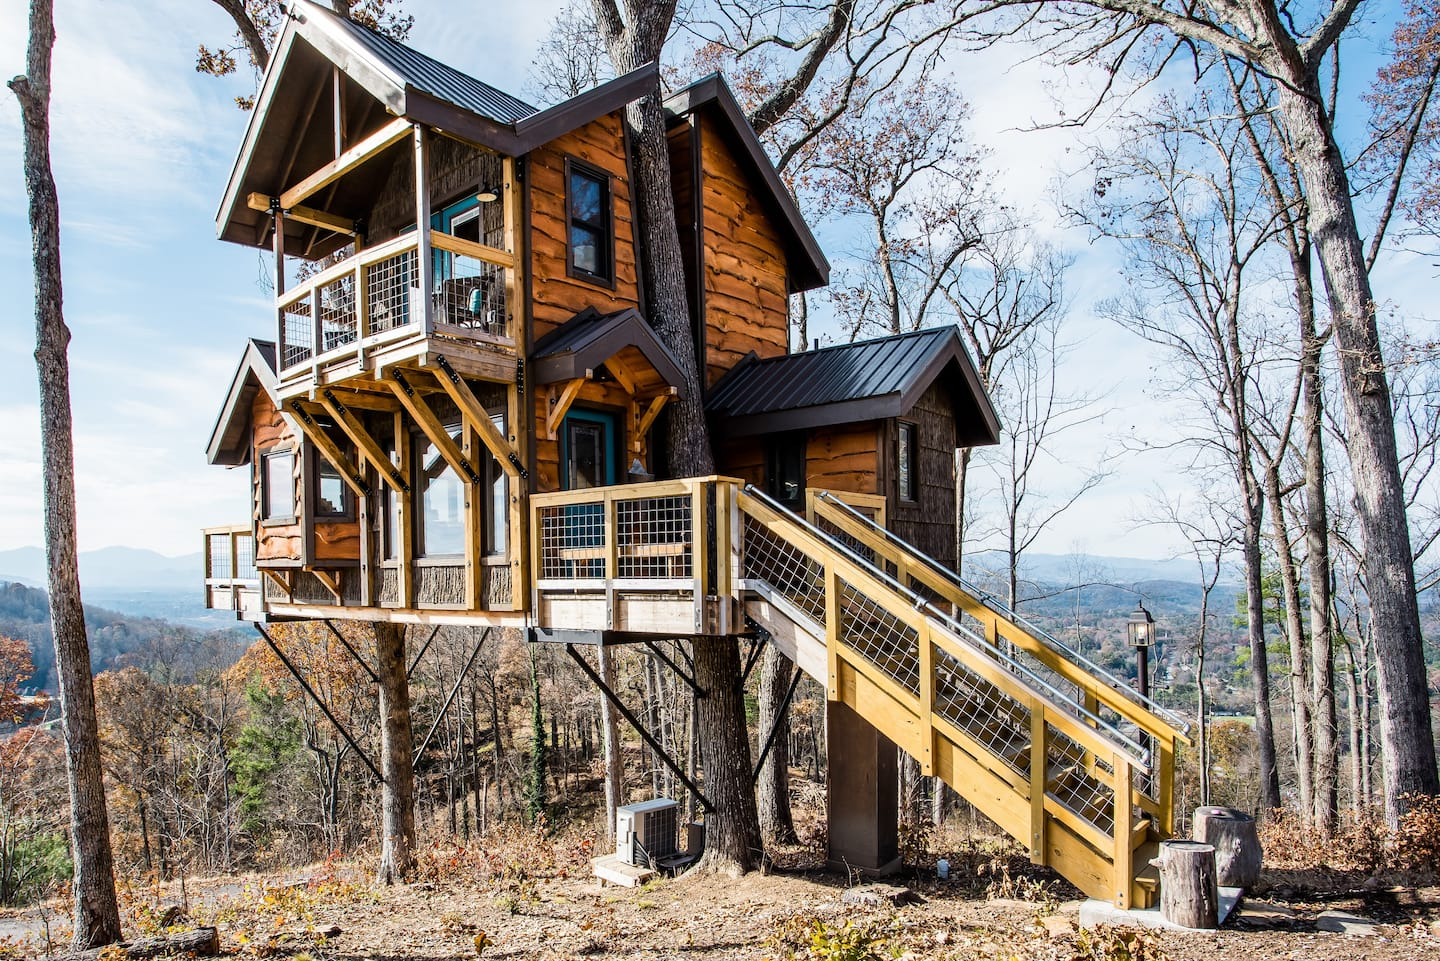 Asheville Treehouse Airbnb - Unique Airbnb North Carolina